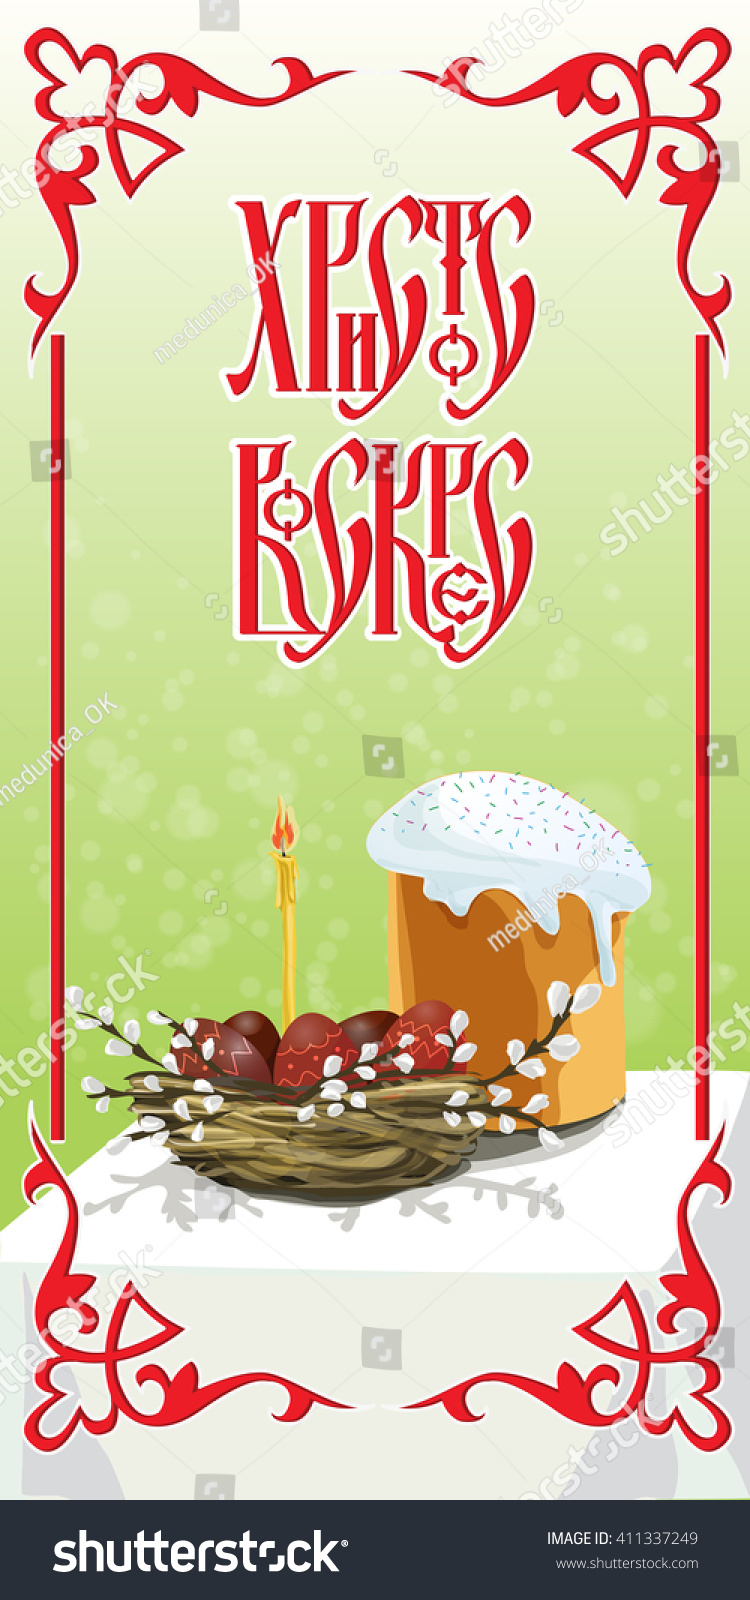 Orthodox Easter Greeting Merry Christmas And Happy New Year 2018